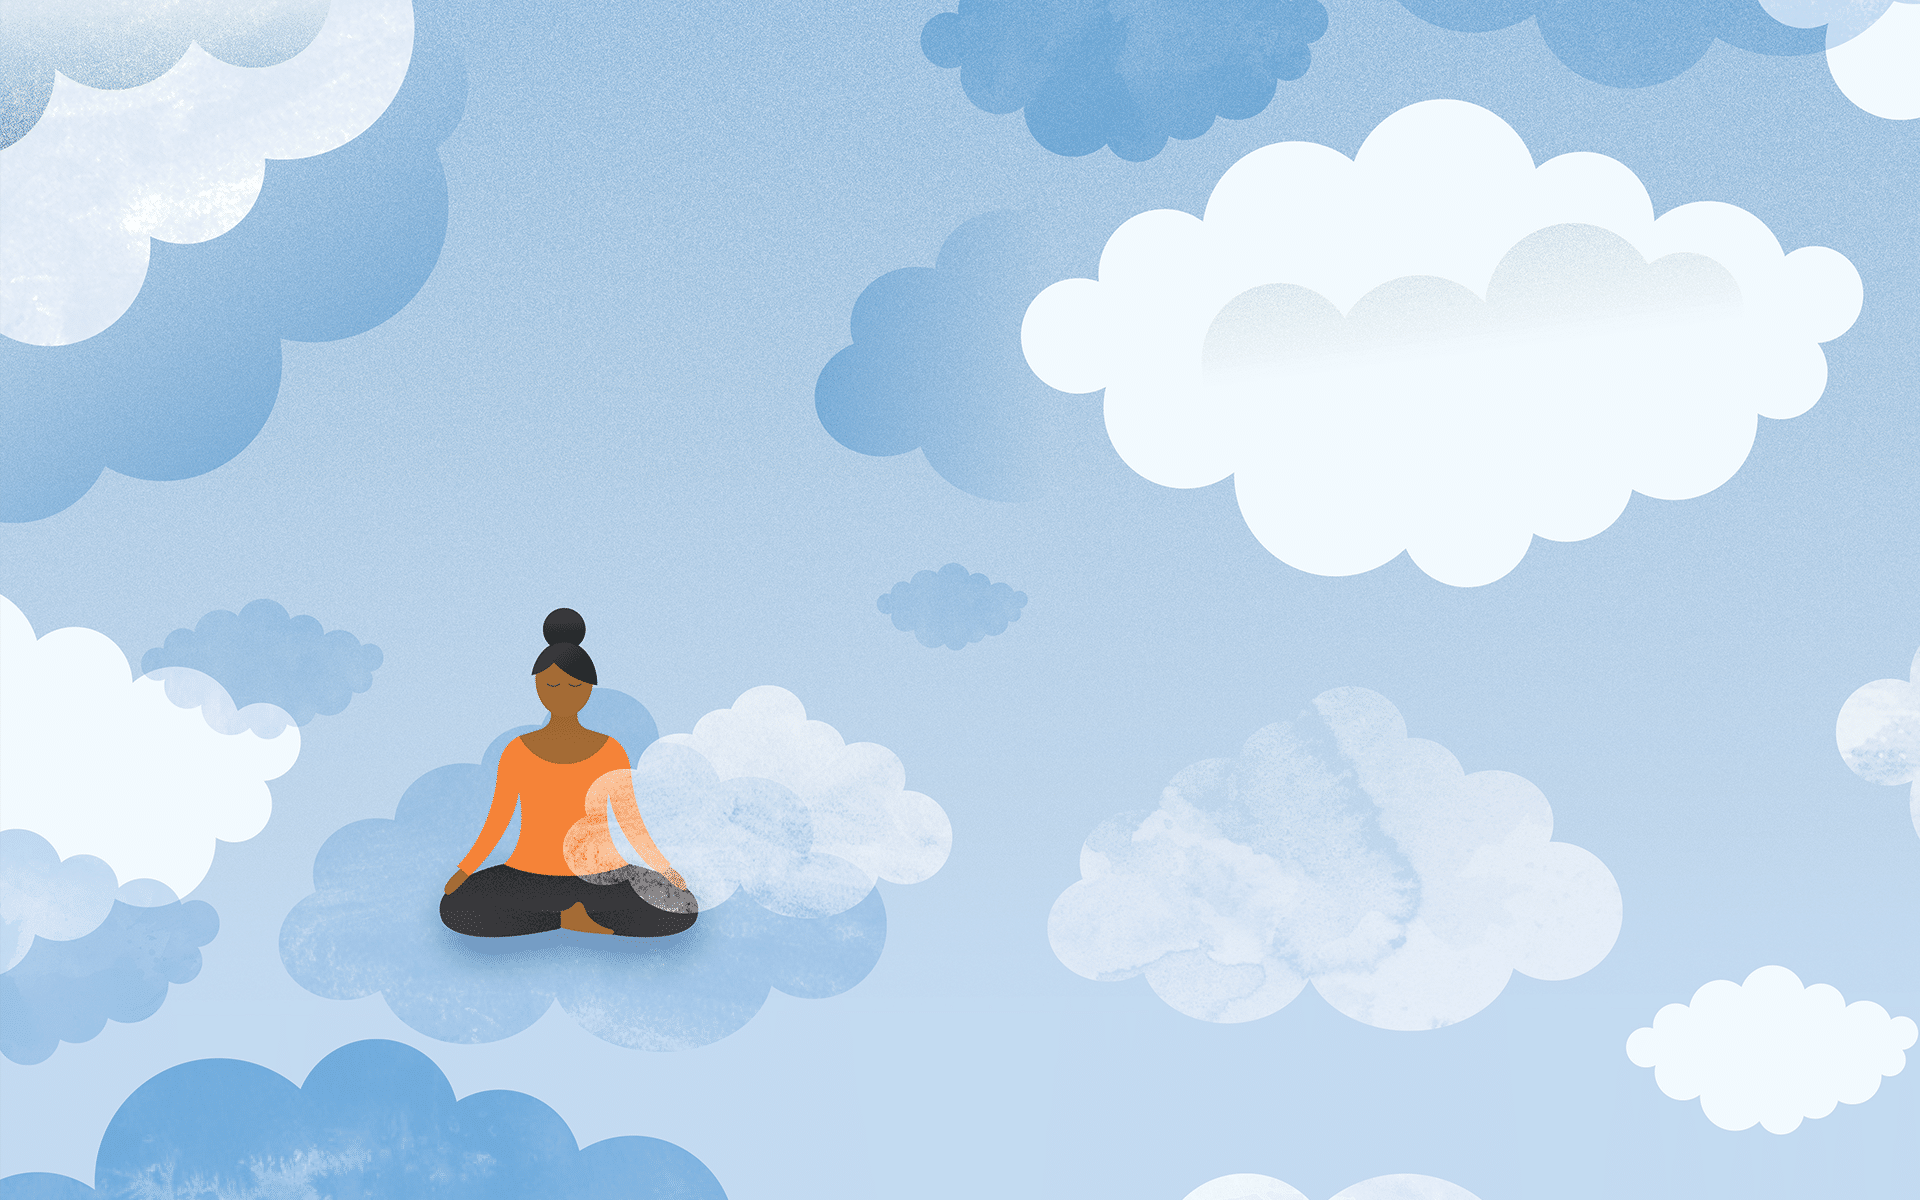 illustration of woman meditating in clouds